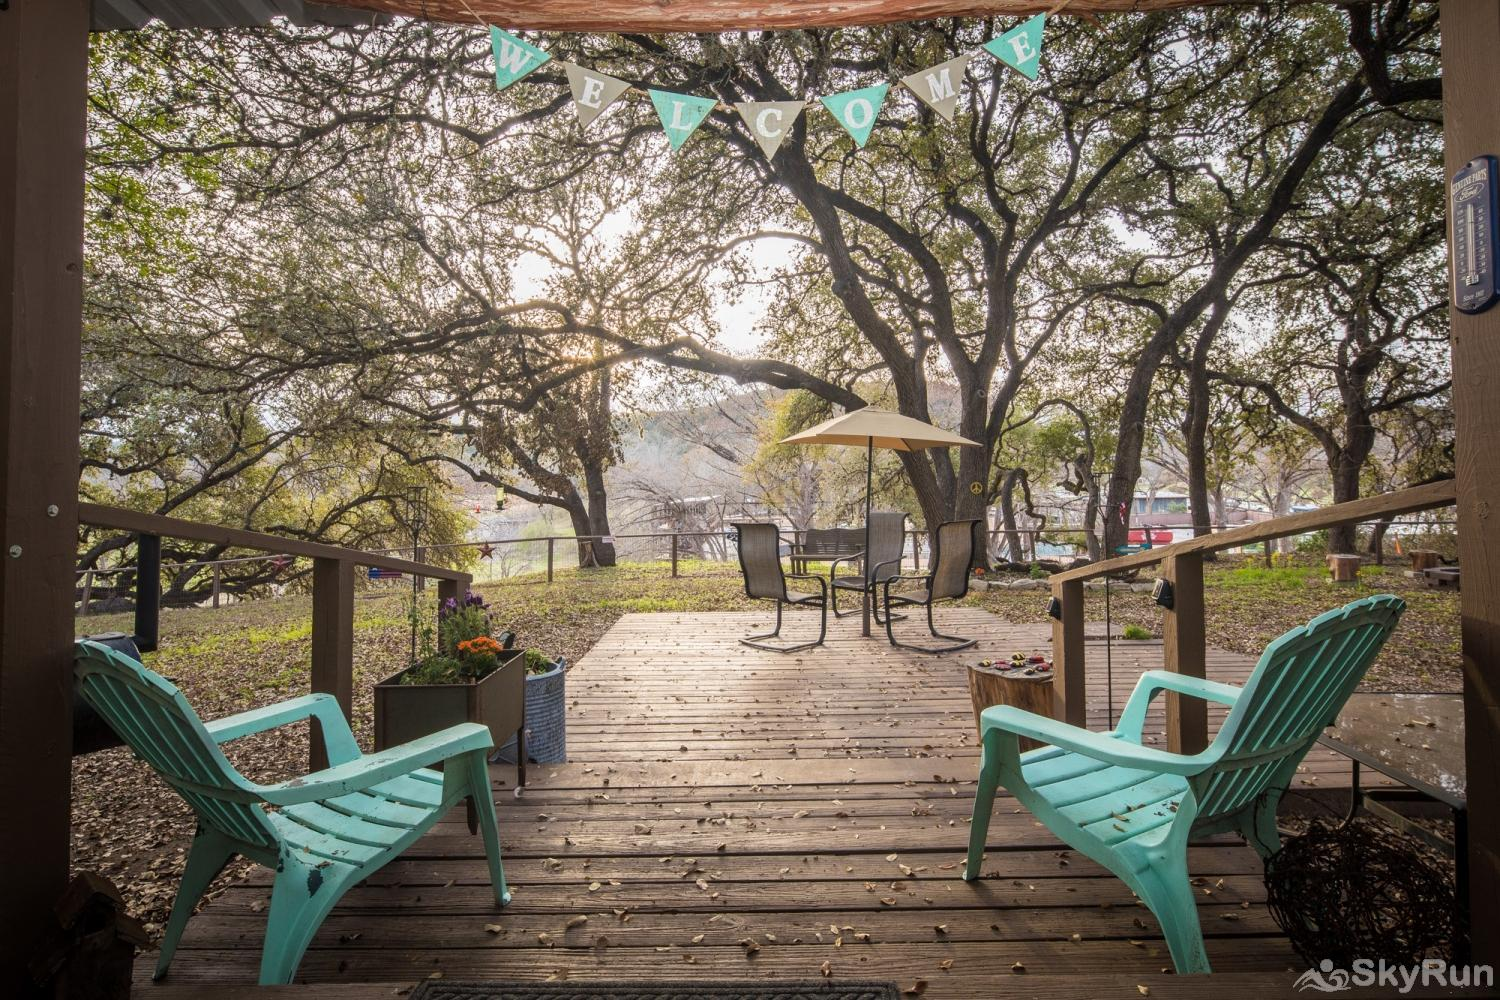 HONEY HAUS ON THE HORSESHOE Honey Haus' Back Porch Overlooking the Guadalupe River